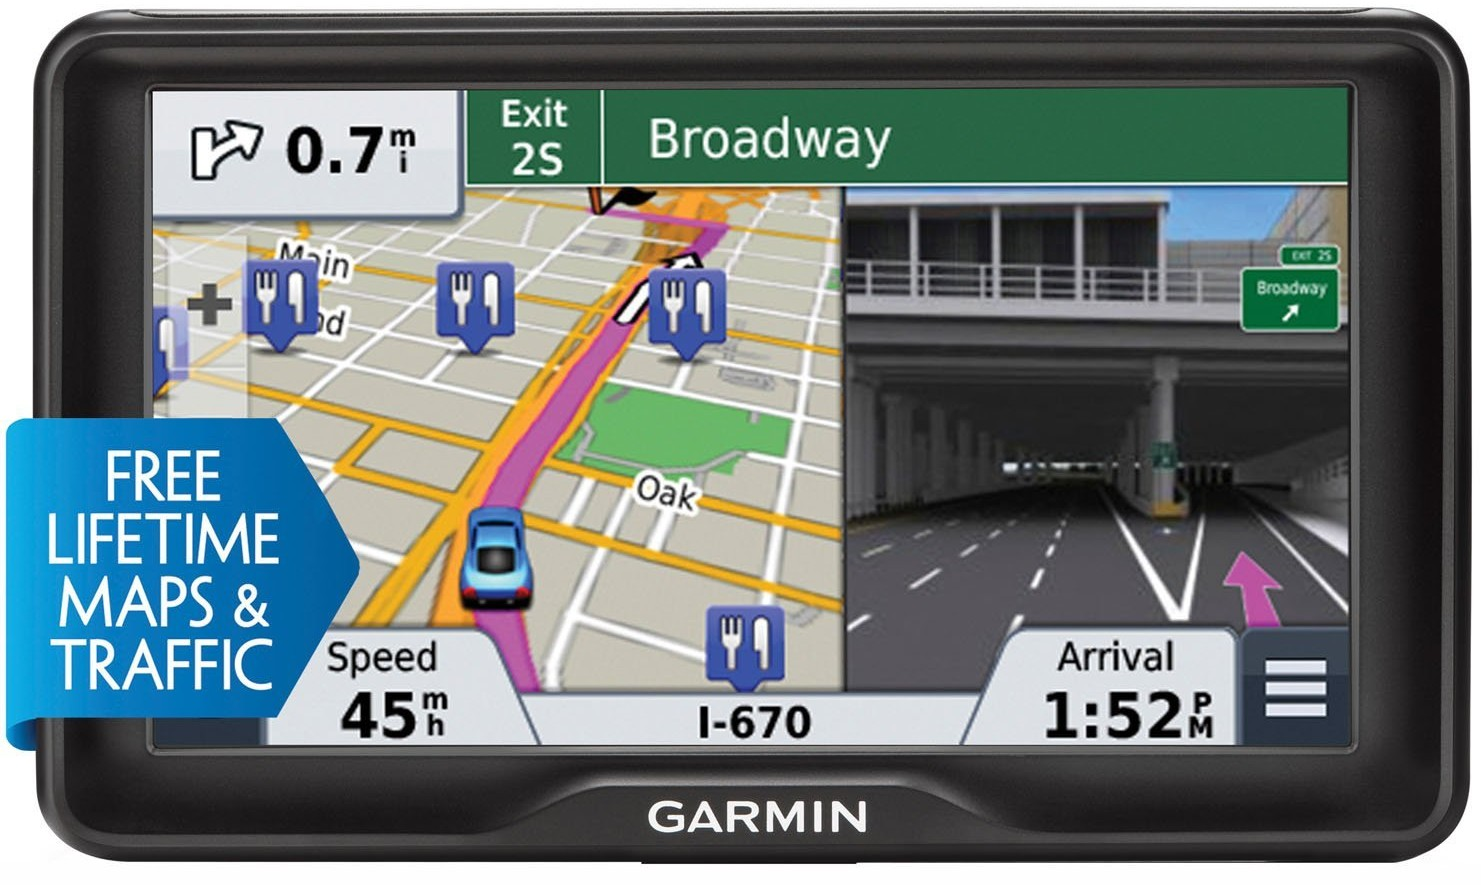 Garmin Nuvi 2797LMT Car GPS Review